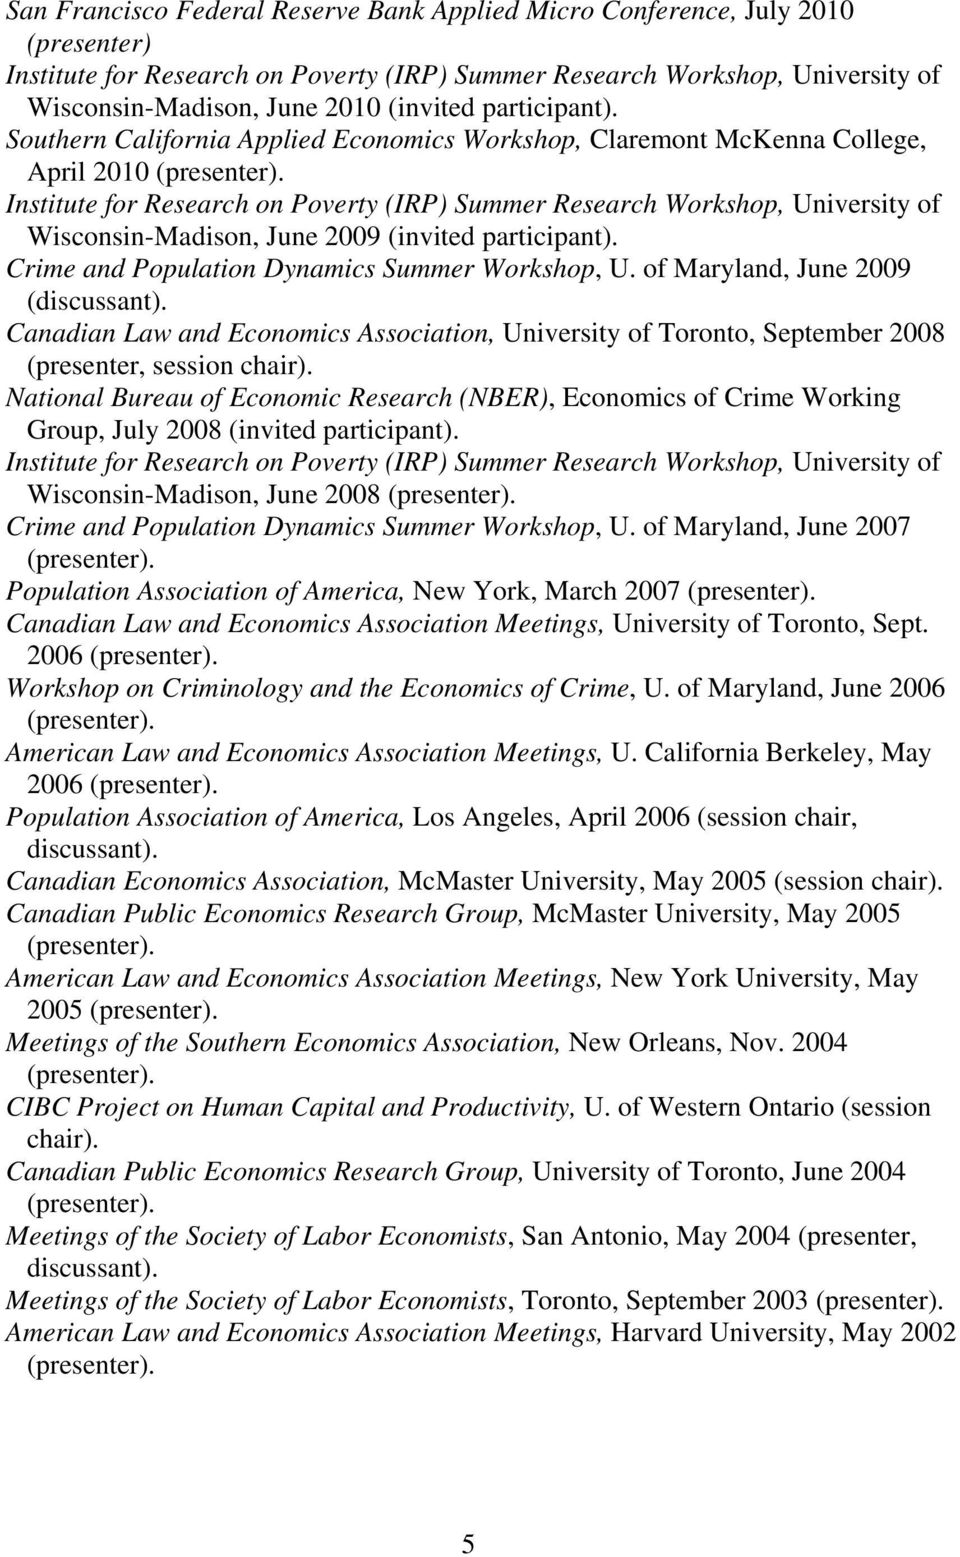 of Maryland, June 2009 (discussant). Canadian Law and Economics Association, University of Toronto, September 2008 (presenter, session chair).